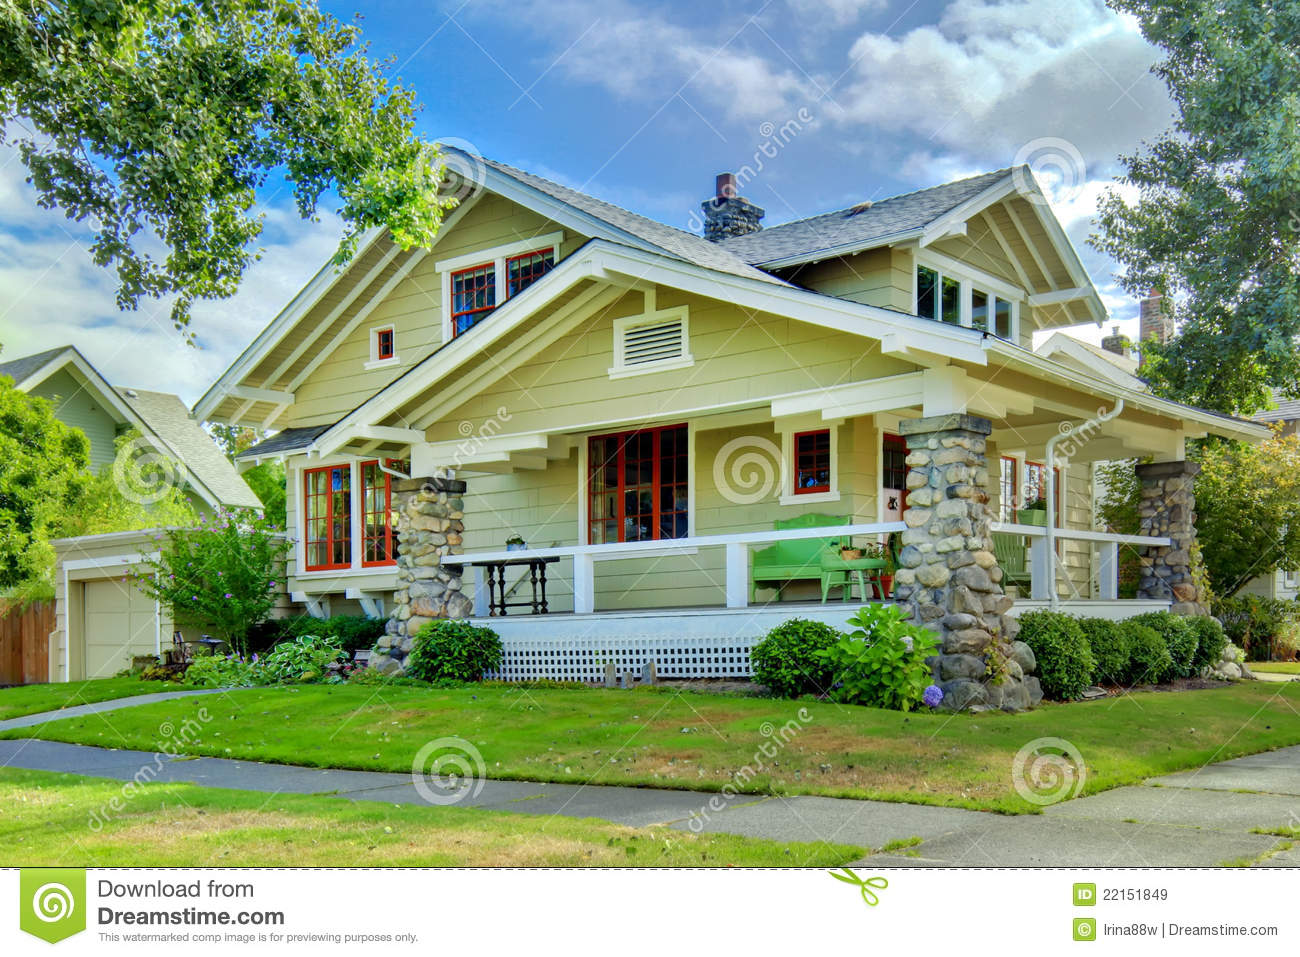 Covered front porch craftsman style home royalty free stock image - Royalty Free Stock Photo Covered Green Home Porch Style